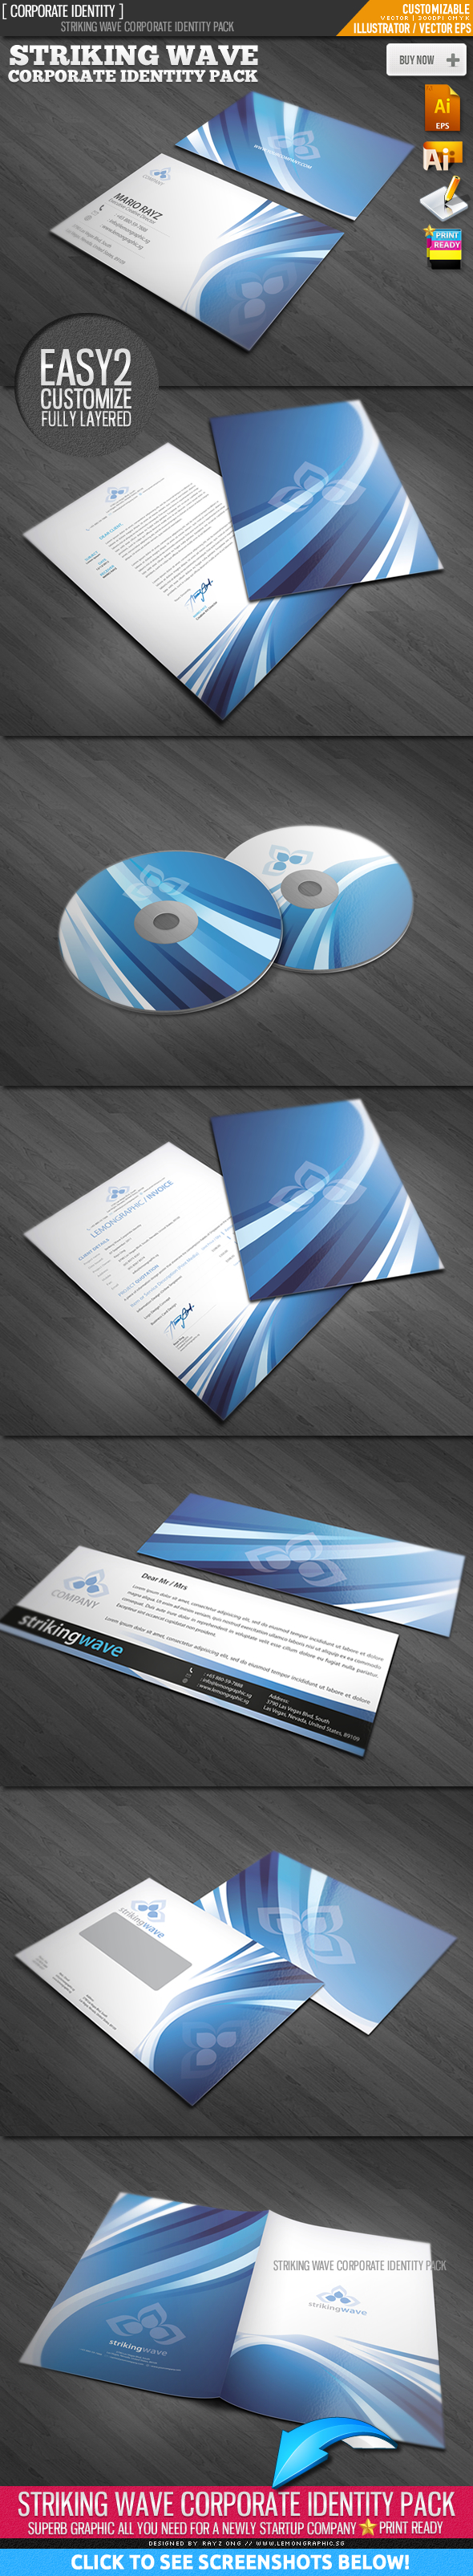 Striking wave corporate identity by Lemongraphic